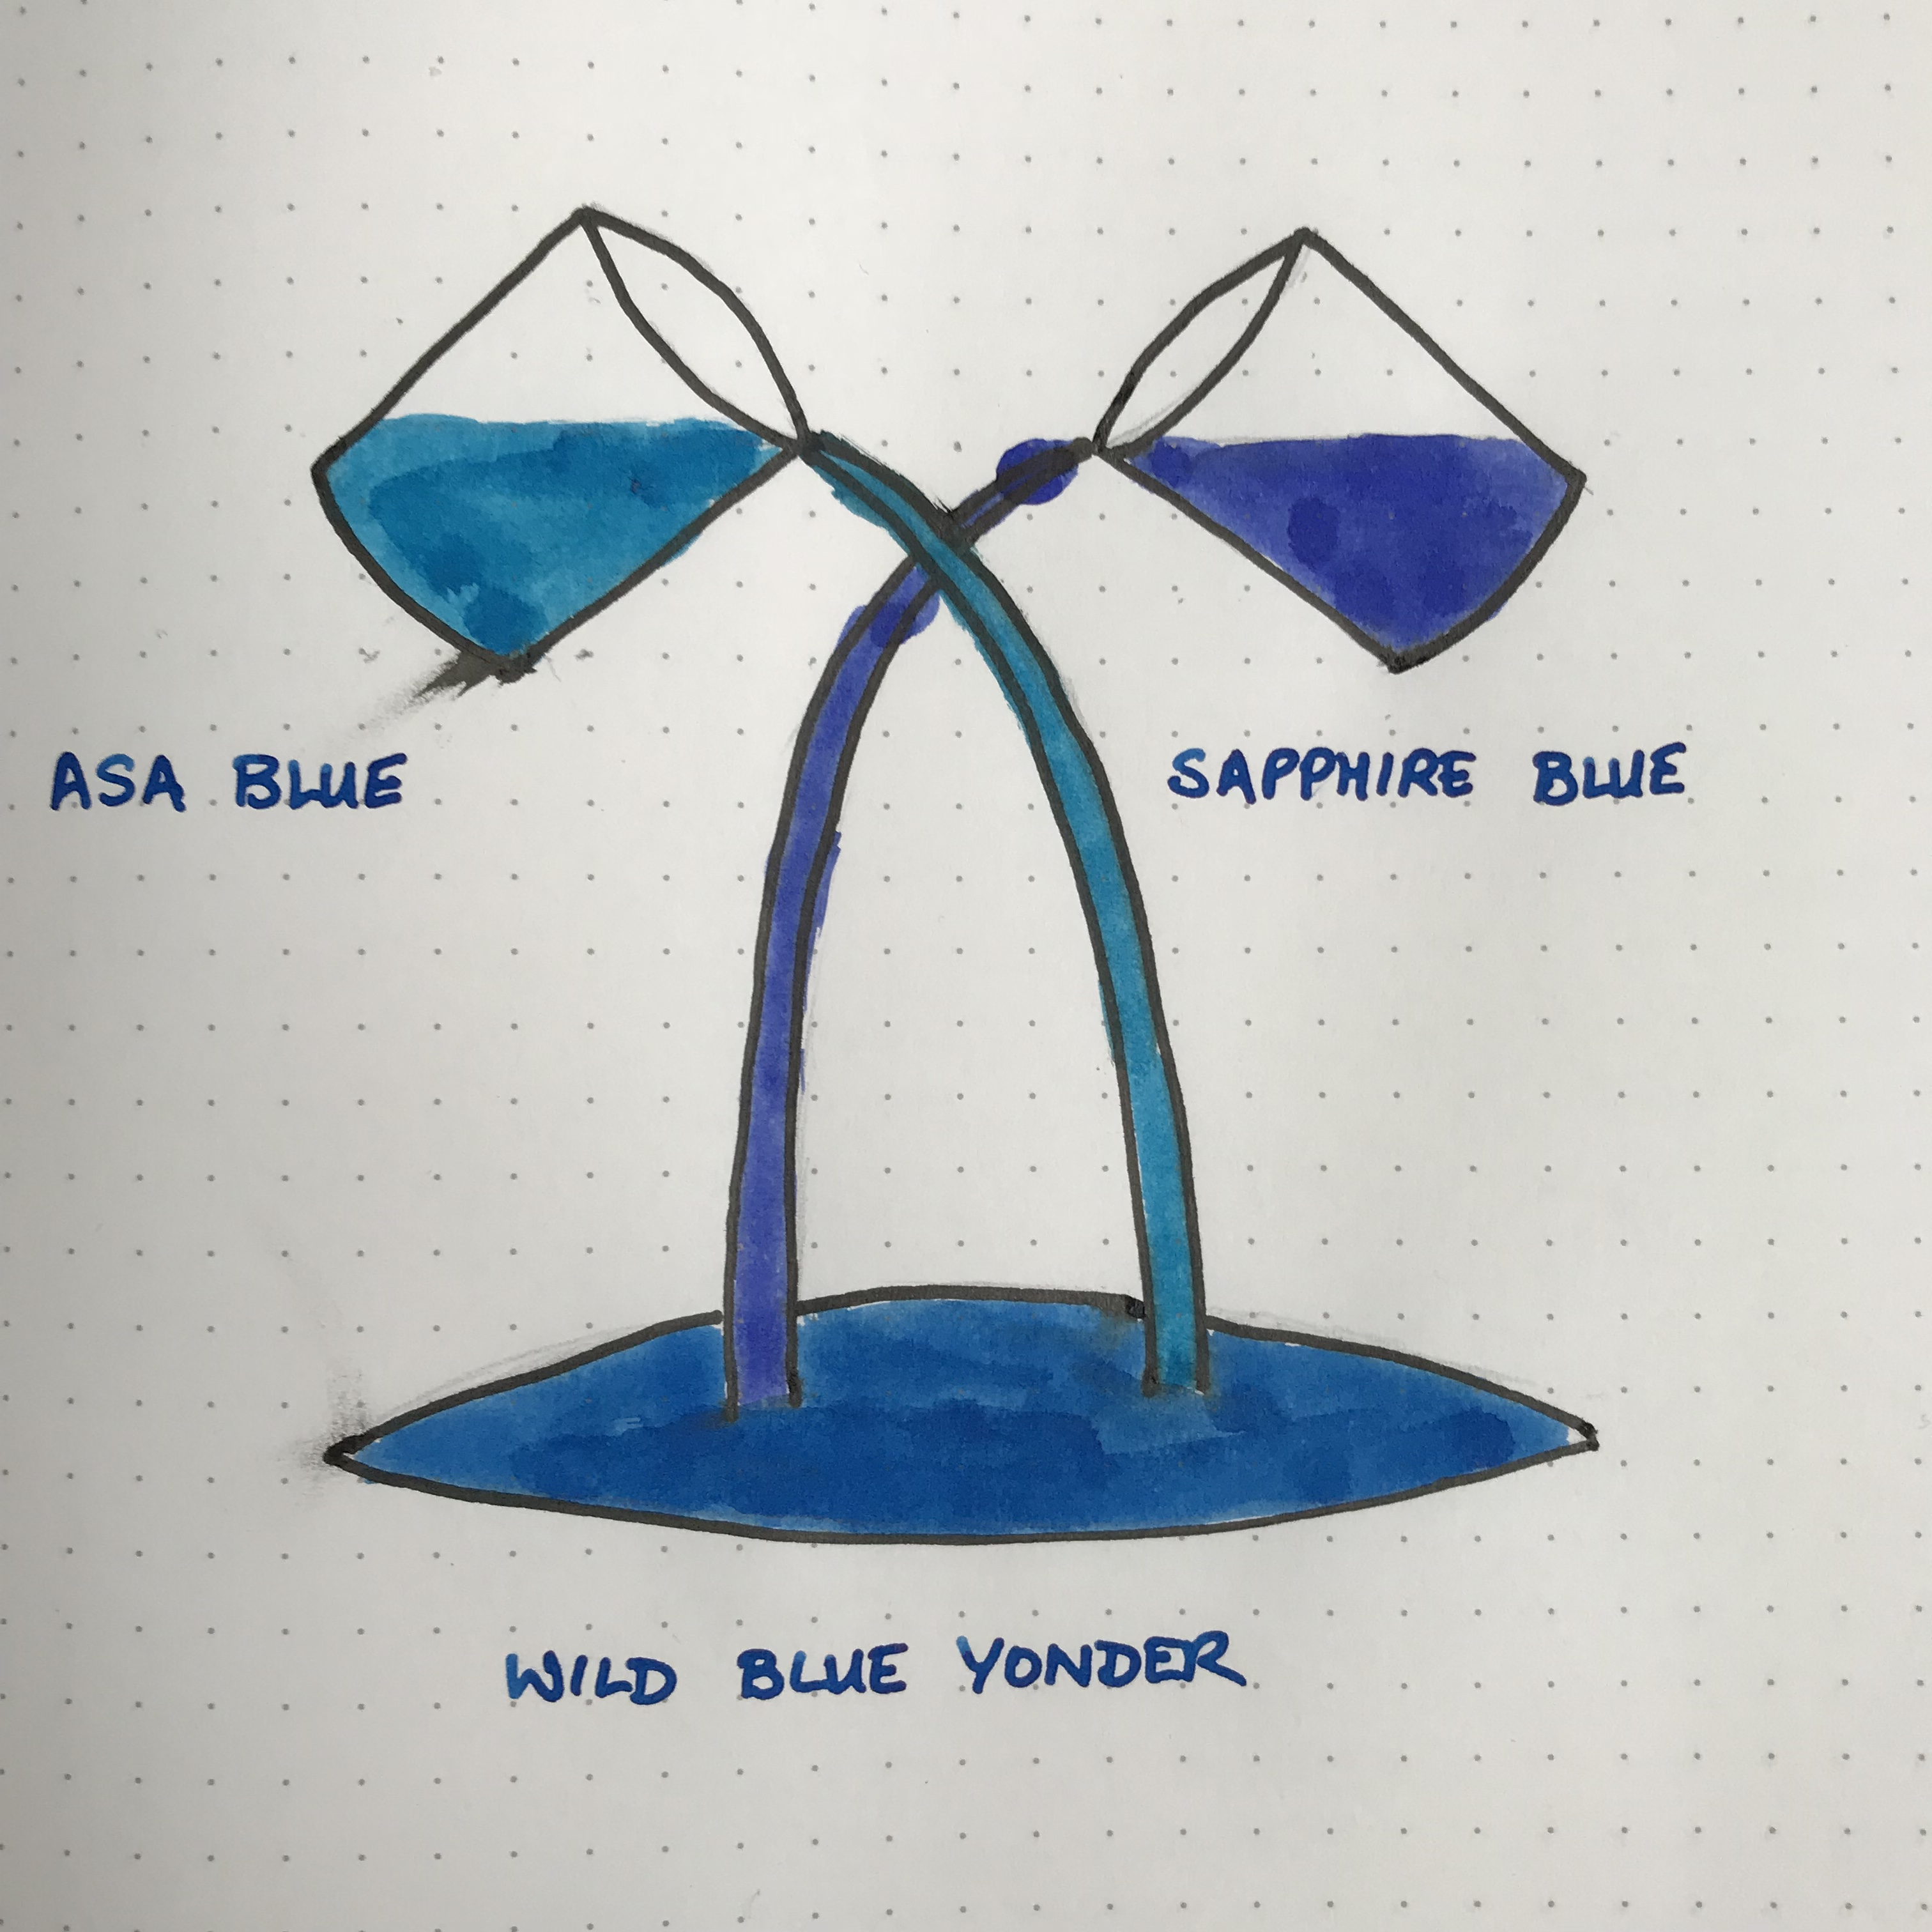 What happens when you mix ASA Blue and Sapphire Blue